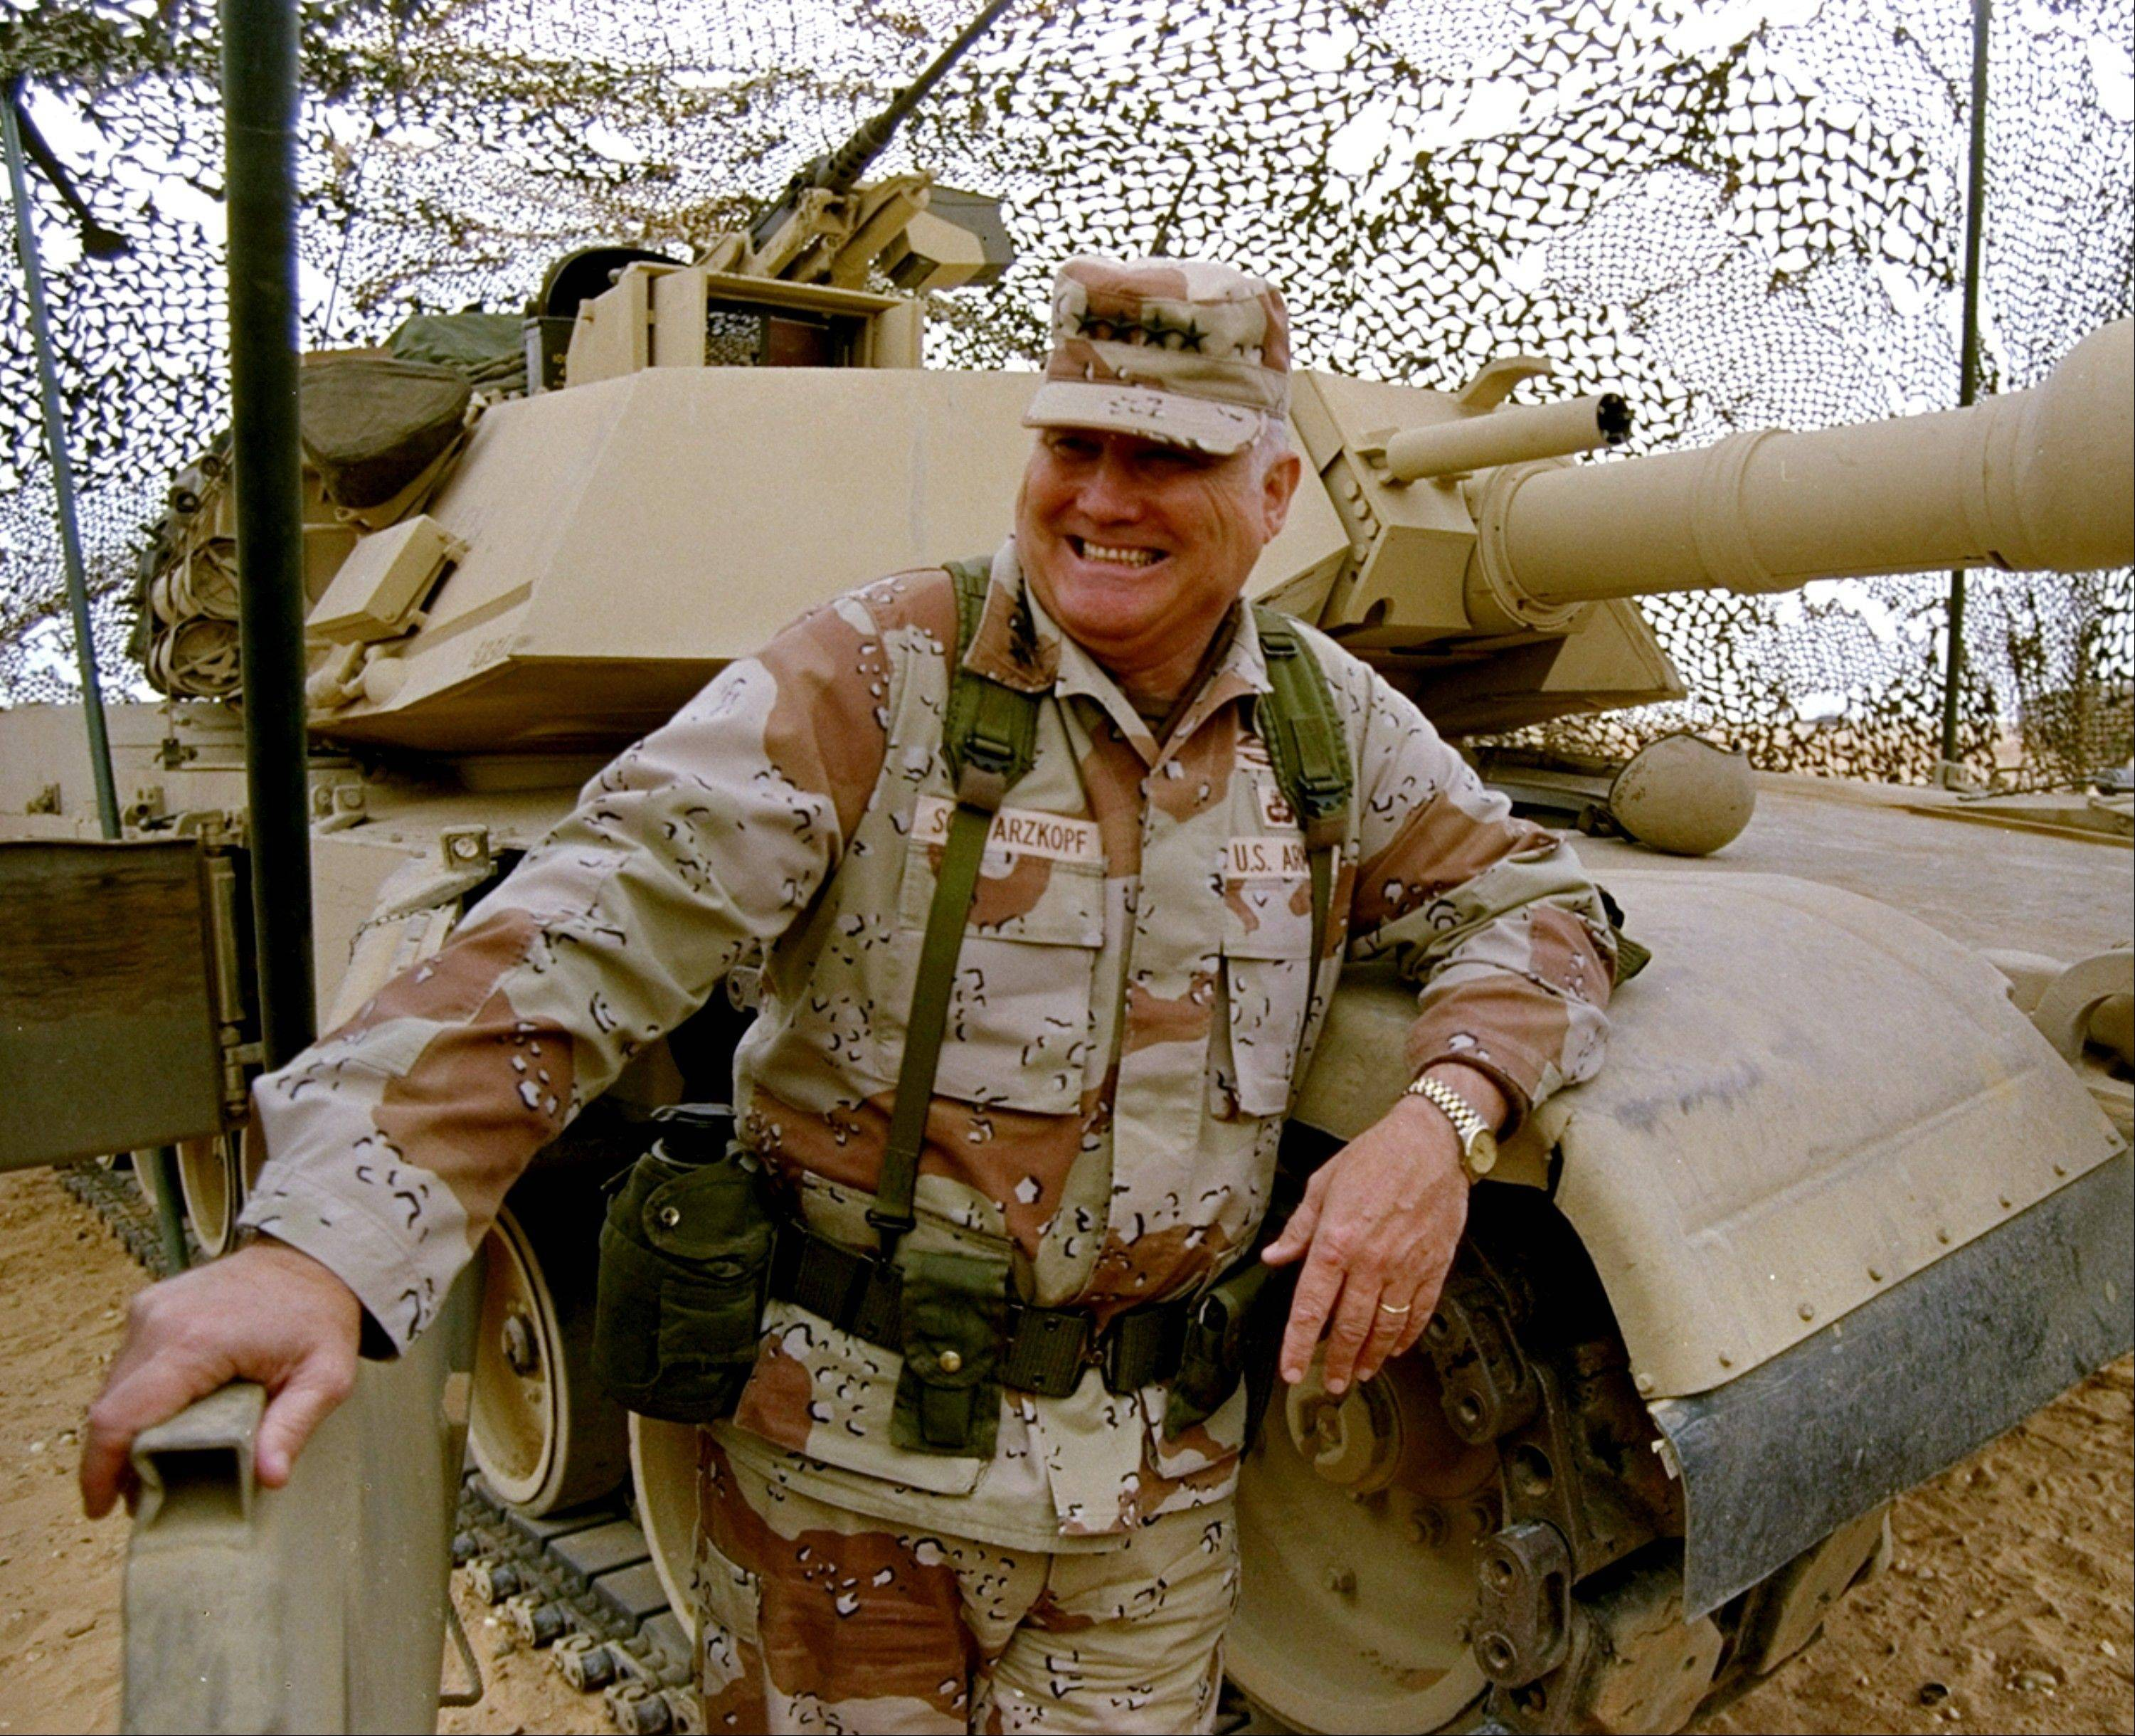 In this Jan. 12, 1991 file photo, Gen. H. Norman Schwarzkopf stands at ease with his tank troops during Operation Desert Storm in Saudi Arabia. Schwarzkopf died Thursday, Dec. 27, 2012 in Tampa, Fla. He was 78.